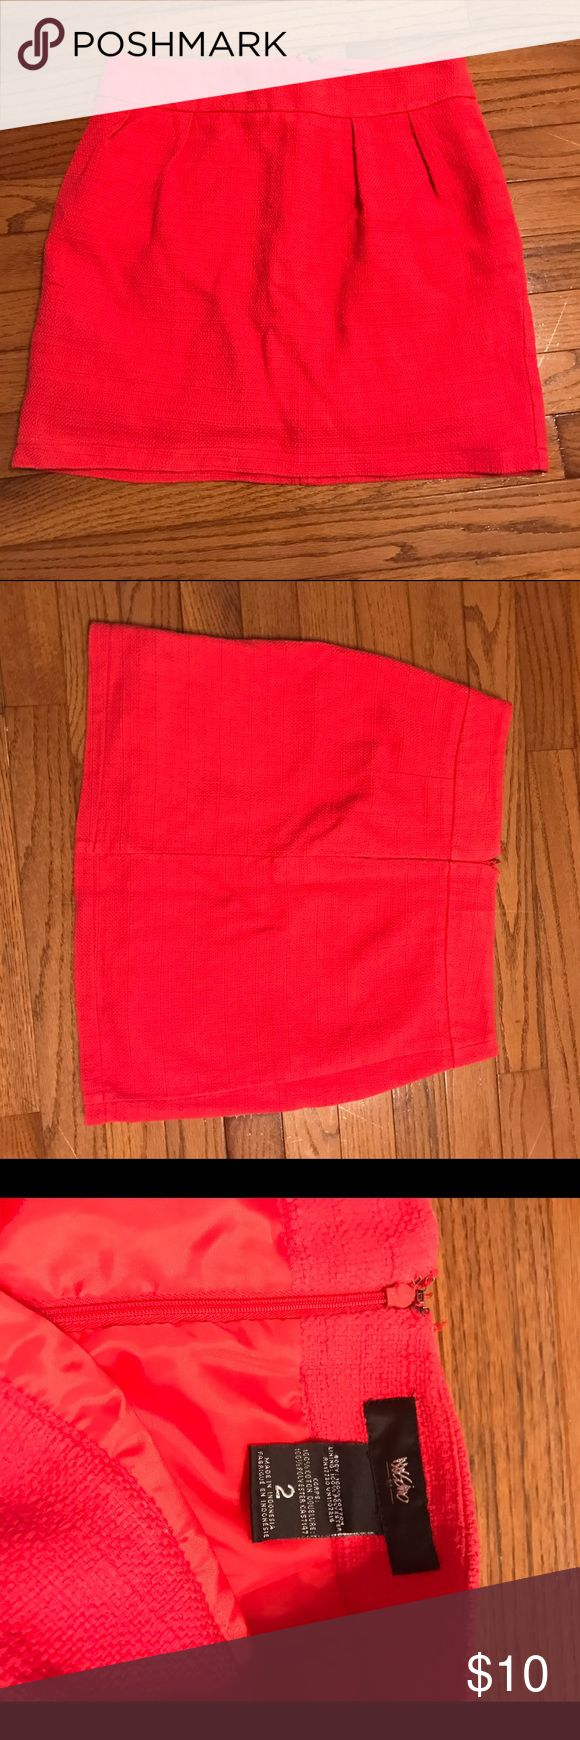 "EUC Coral Pencil Skirt This skirt is great for shorter women. I am 5'3"" and it was a professional length, without being as long as many traditional pencil skirts. Hits just slightly above the knee. Mossimo Supply Co Skirts Pencil"